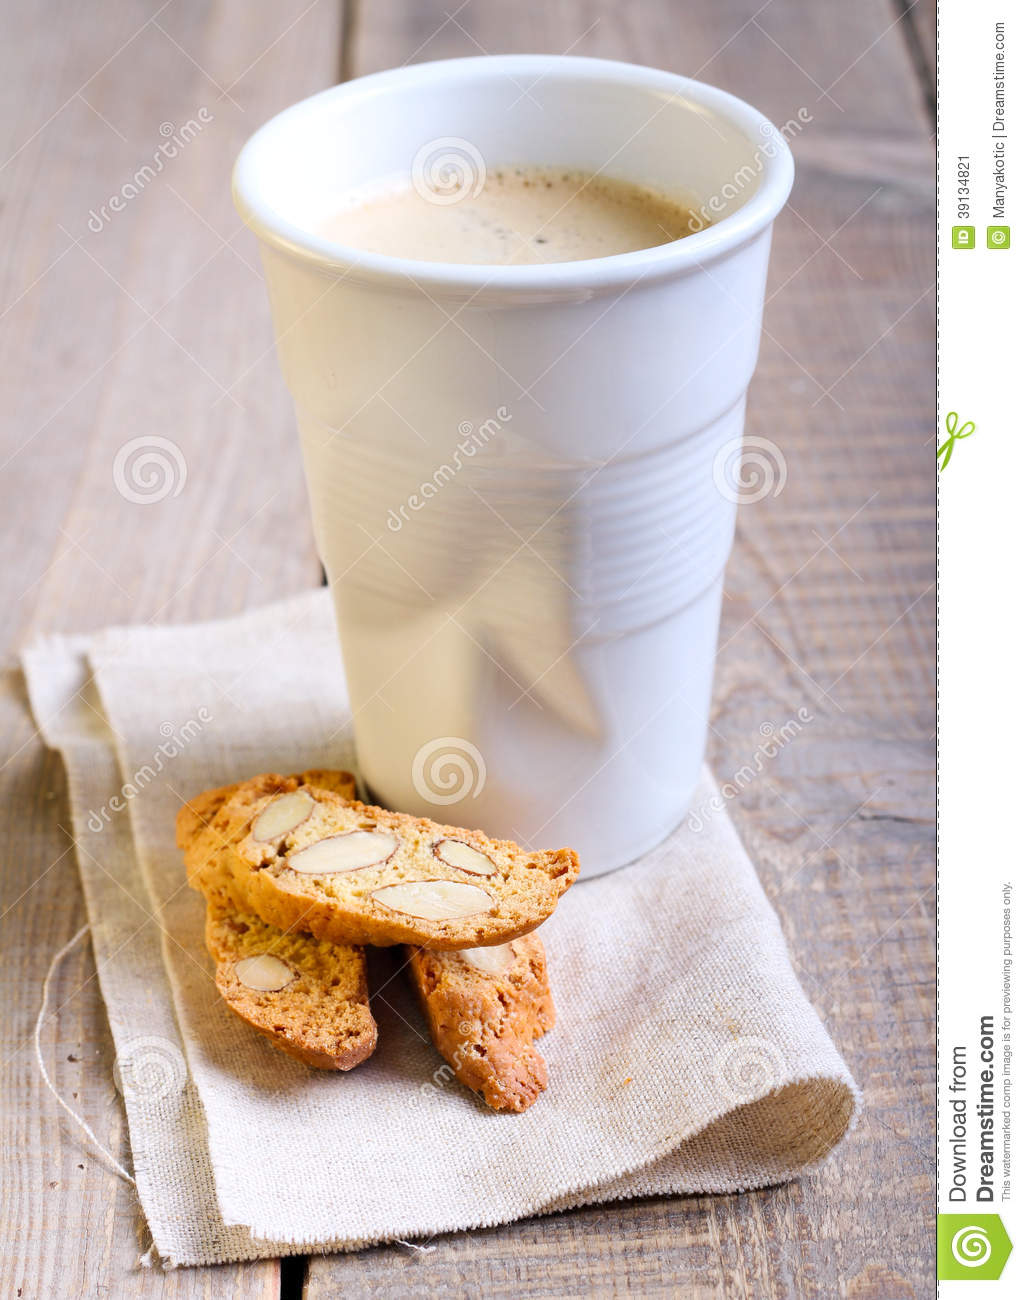 Cup Of Coffee And Biscuits Stock Photo - Image: 39134821